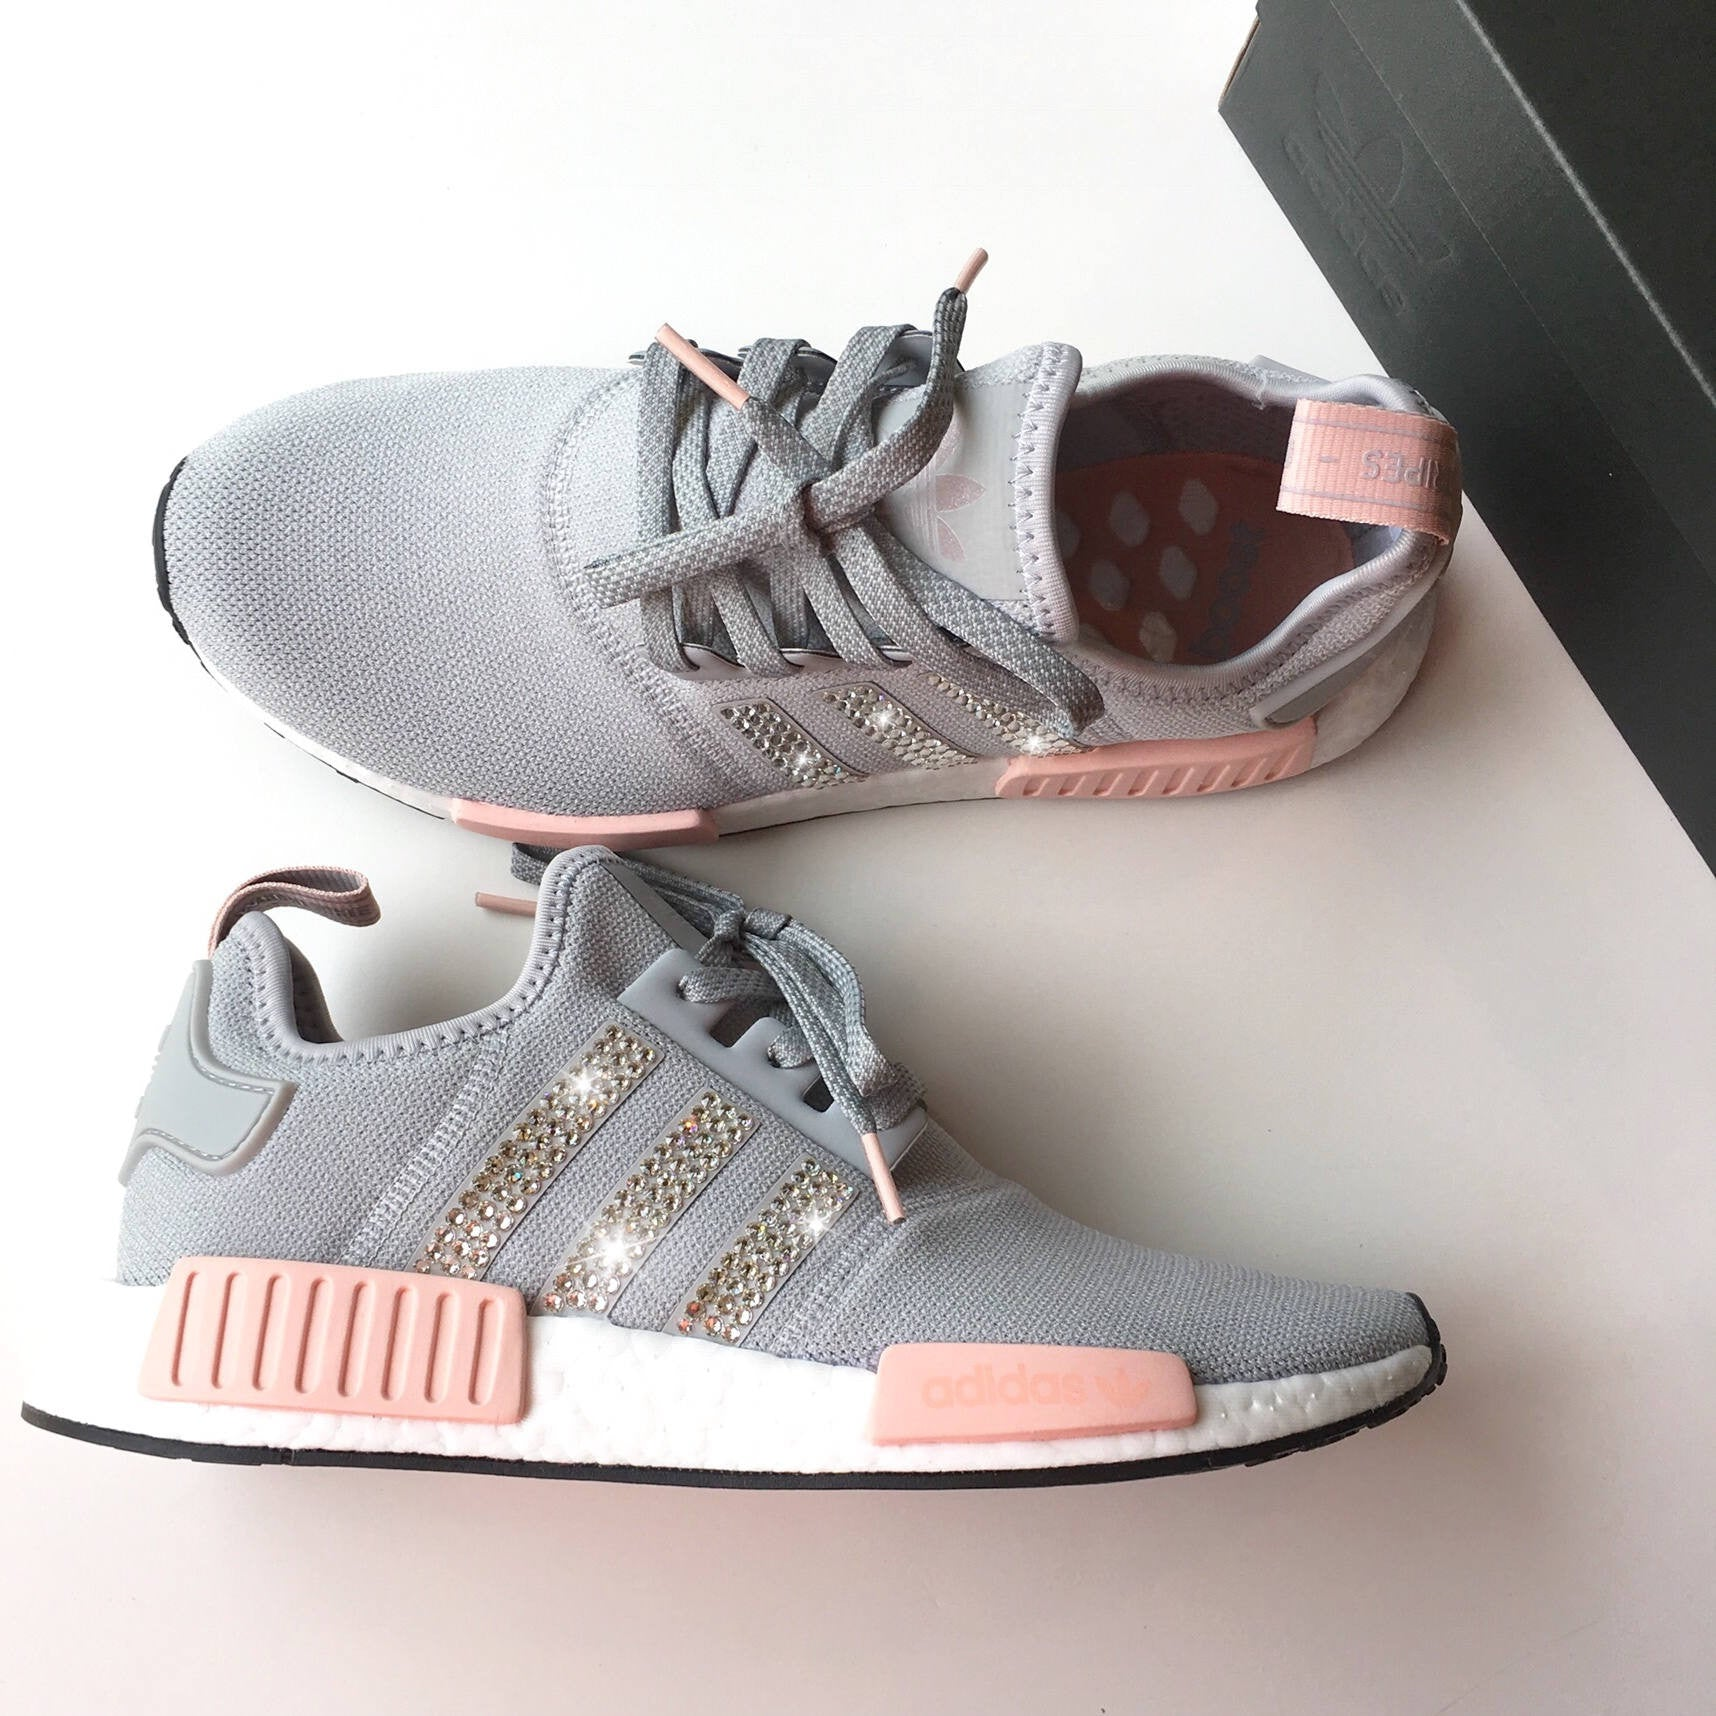 54d06f8a70555 ... order new bling adidas nmd with swarovski crystals womens originals nmdr1  runners casual shoes 8678c 964c8